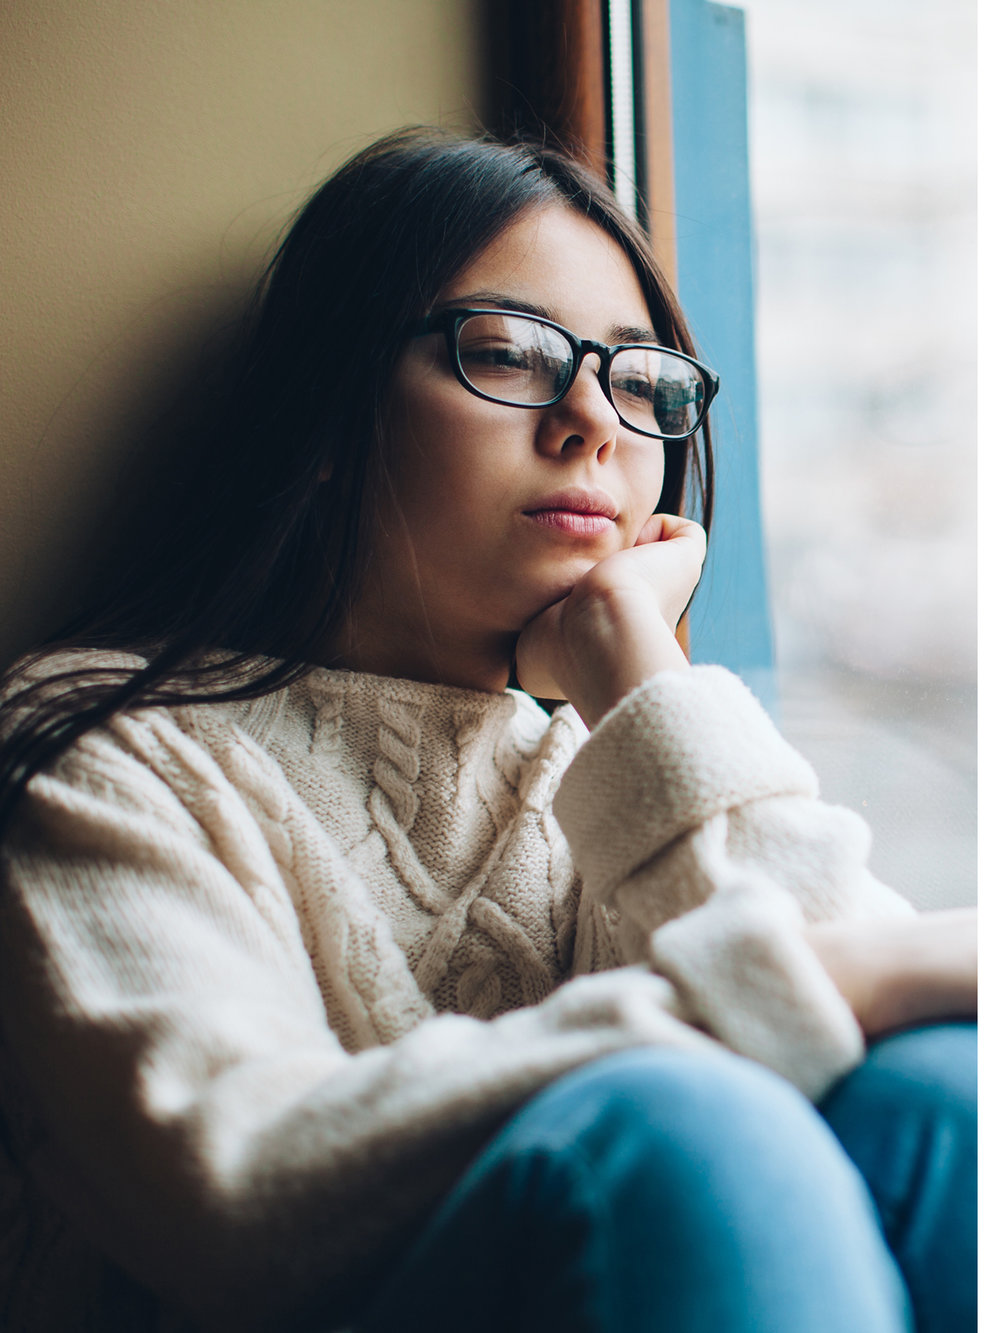 teenage-girl-with-depression-welcome-to-humanity-mental-health-coaching.jpg